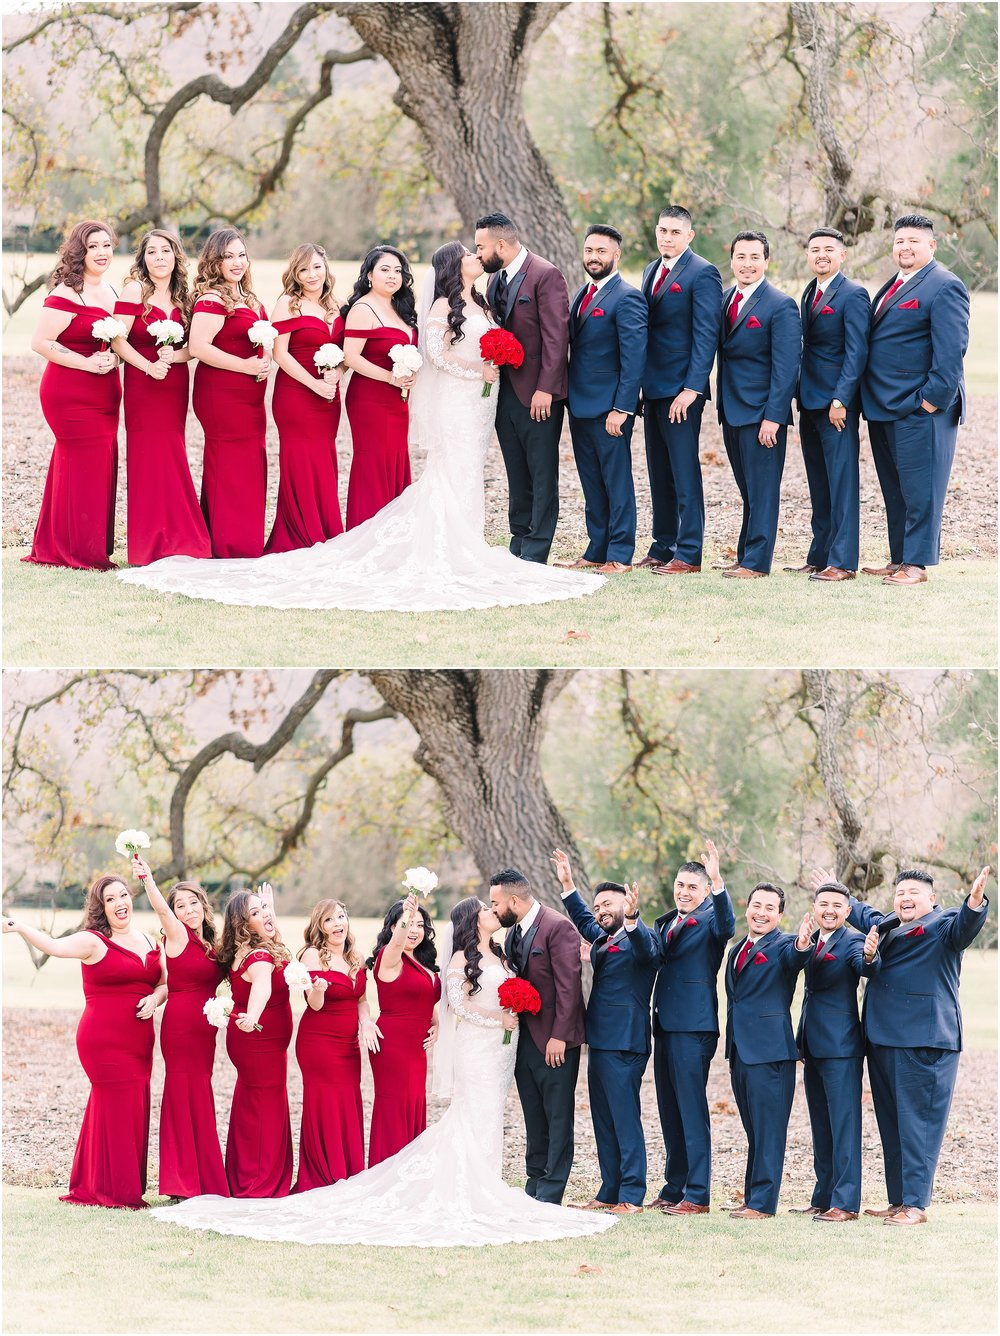 Ventura-California-and-Tallahassee-Florida-Wedding-Photographer-Crystal-and-Daniel-Wedding-at-Westlake-California_0023.jpg